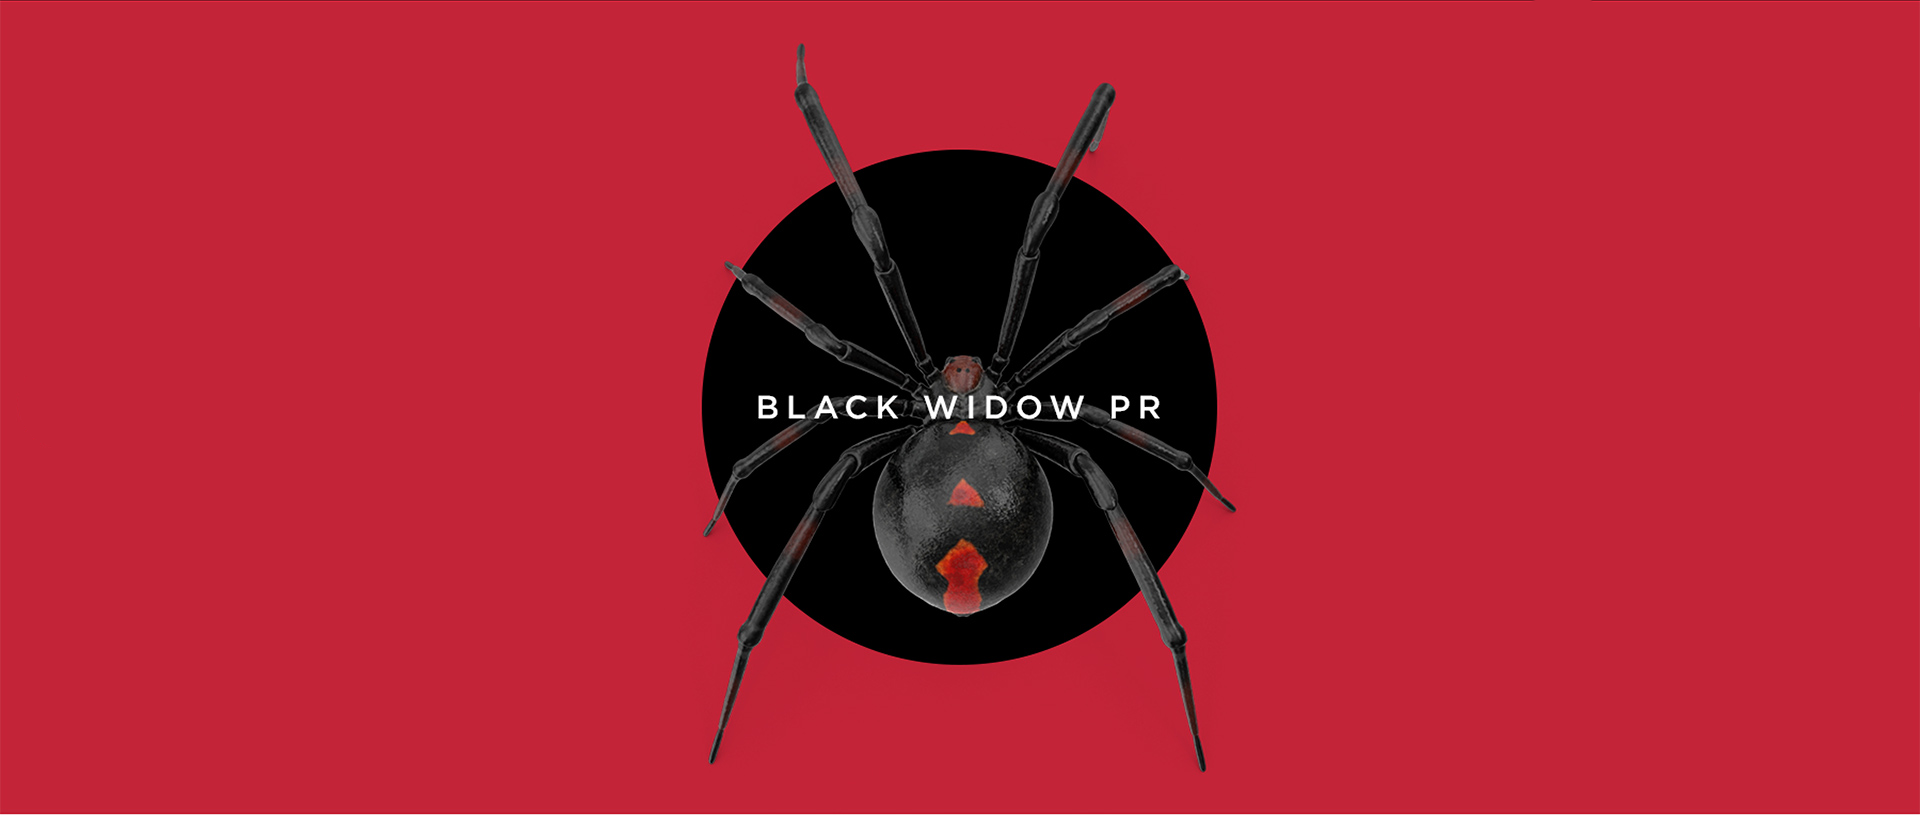 Welcome to Black Widow PR